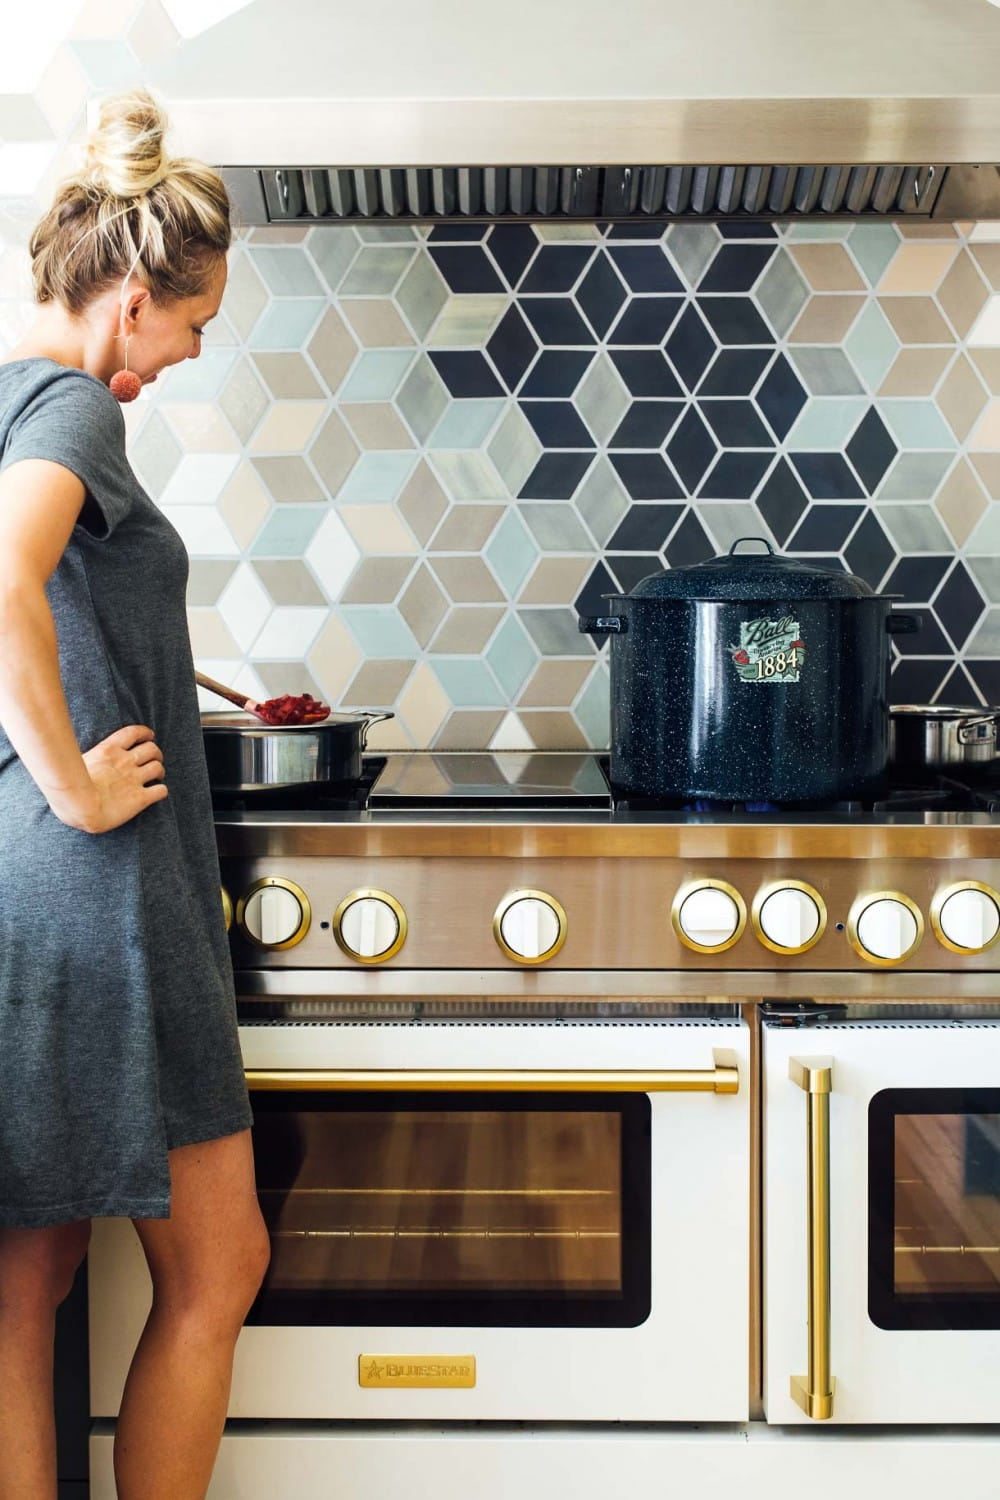 girl standing at stove with ball water bath canner on stove and she is stirring something in a saucepan